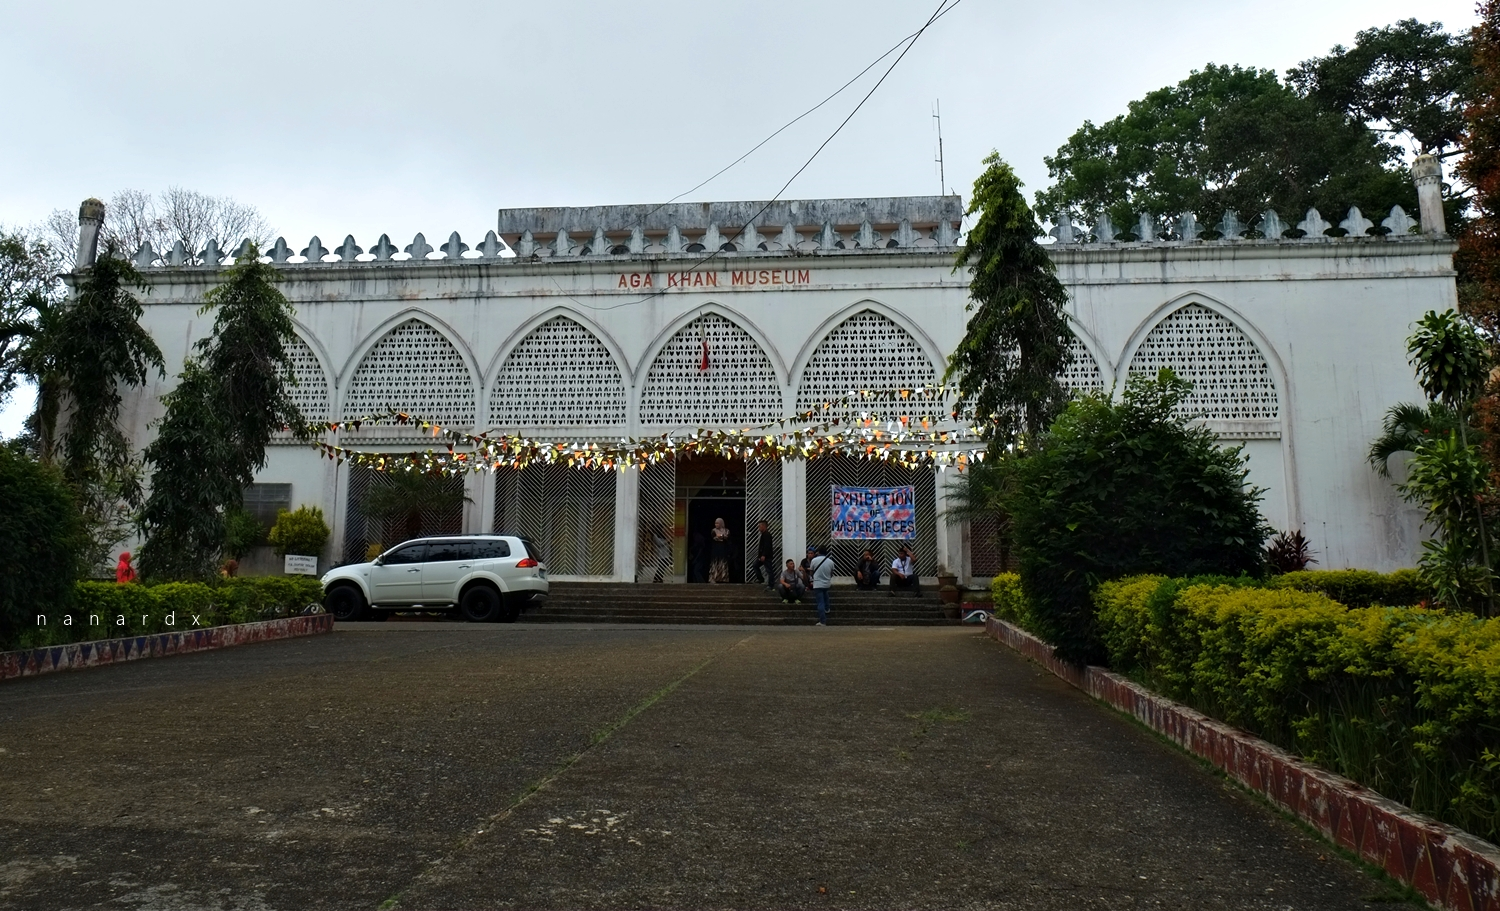 Aga Khan Museum in Marawi